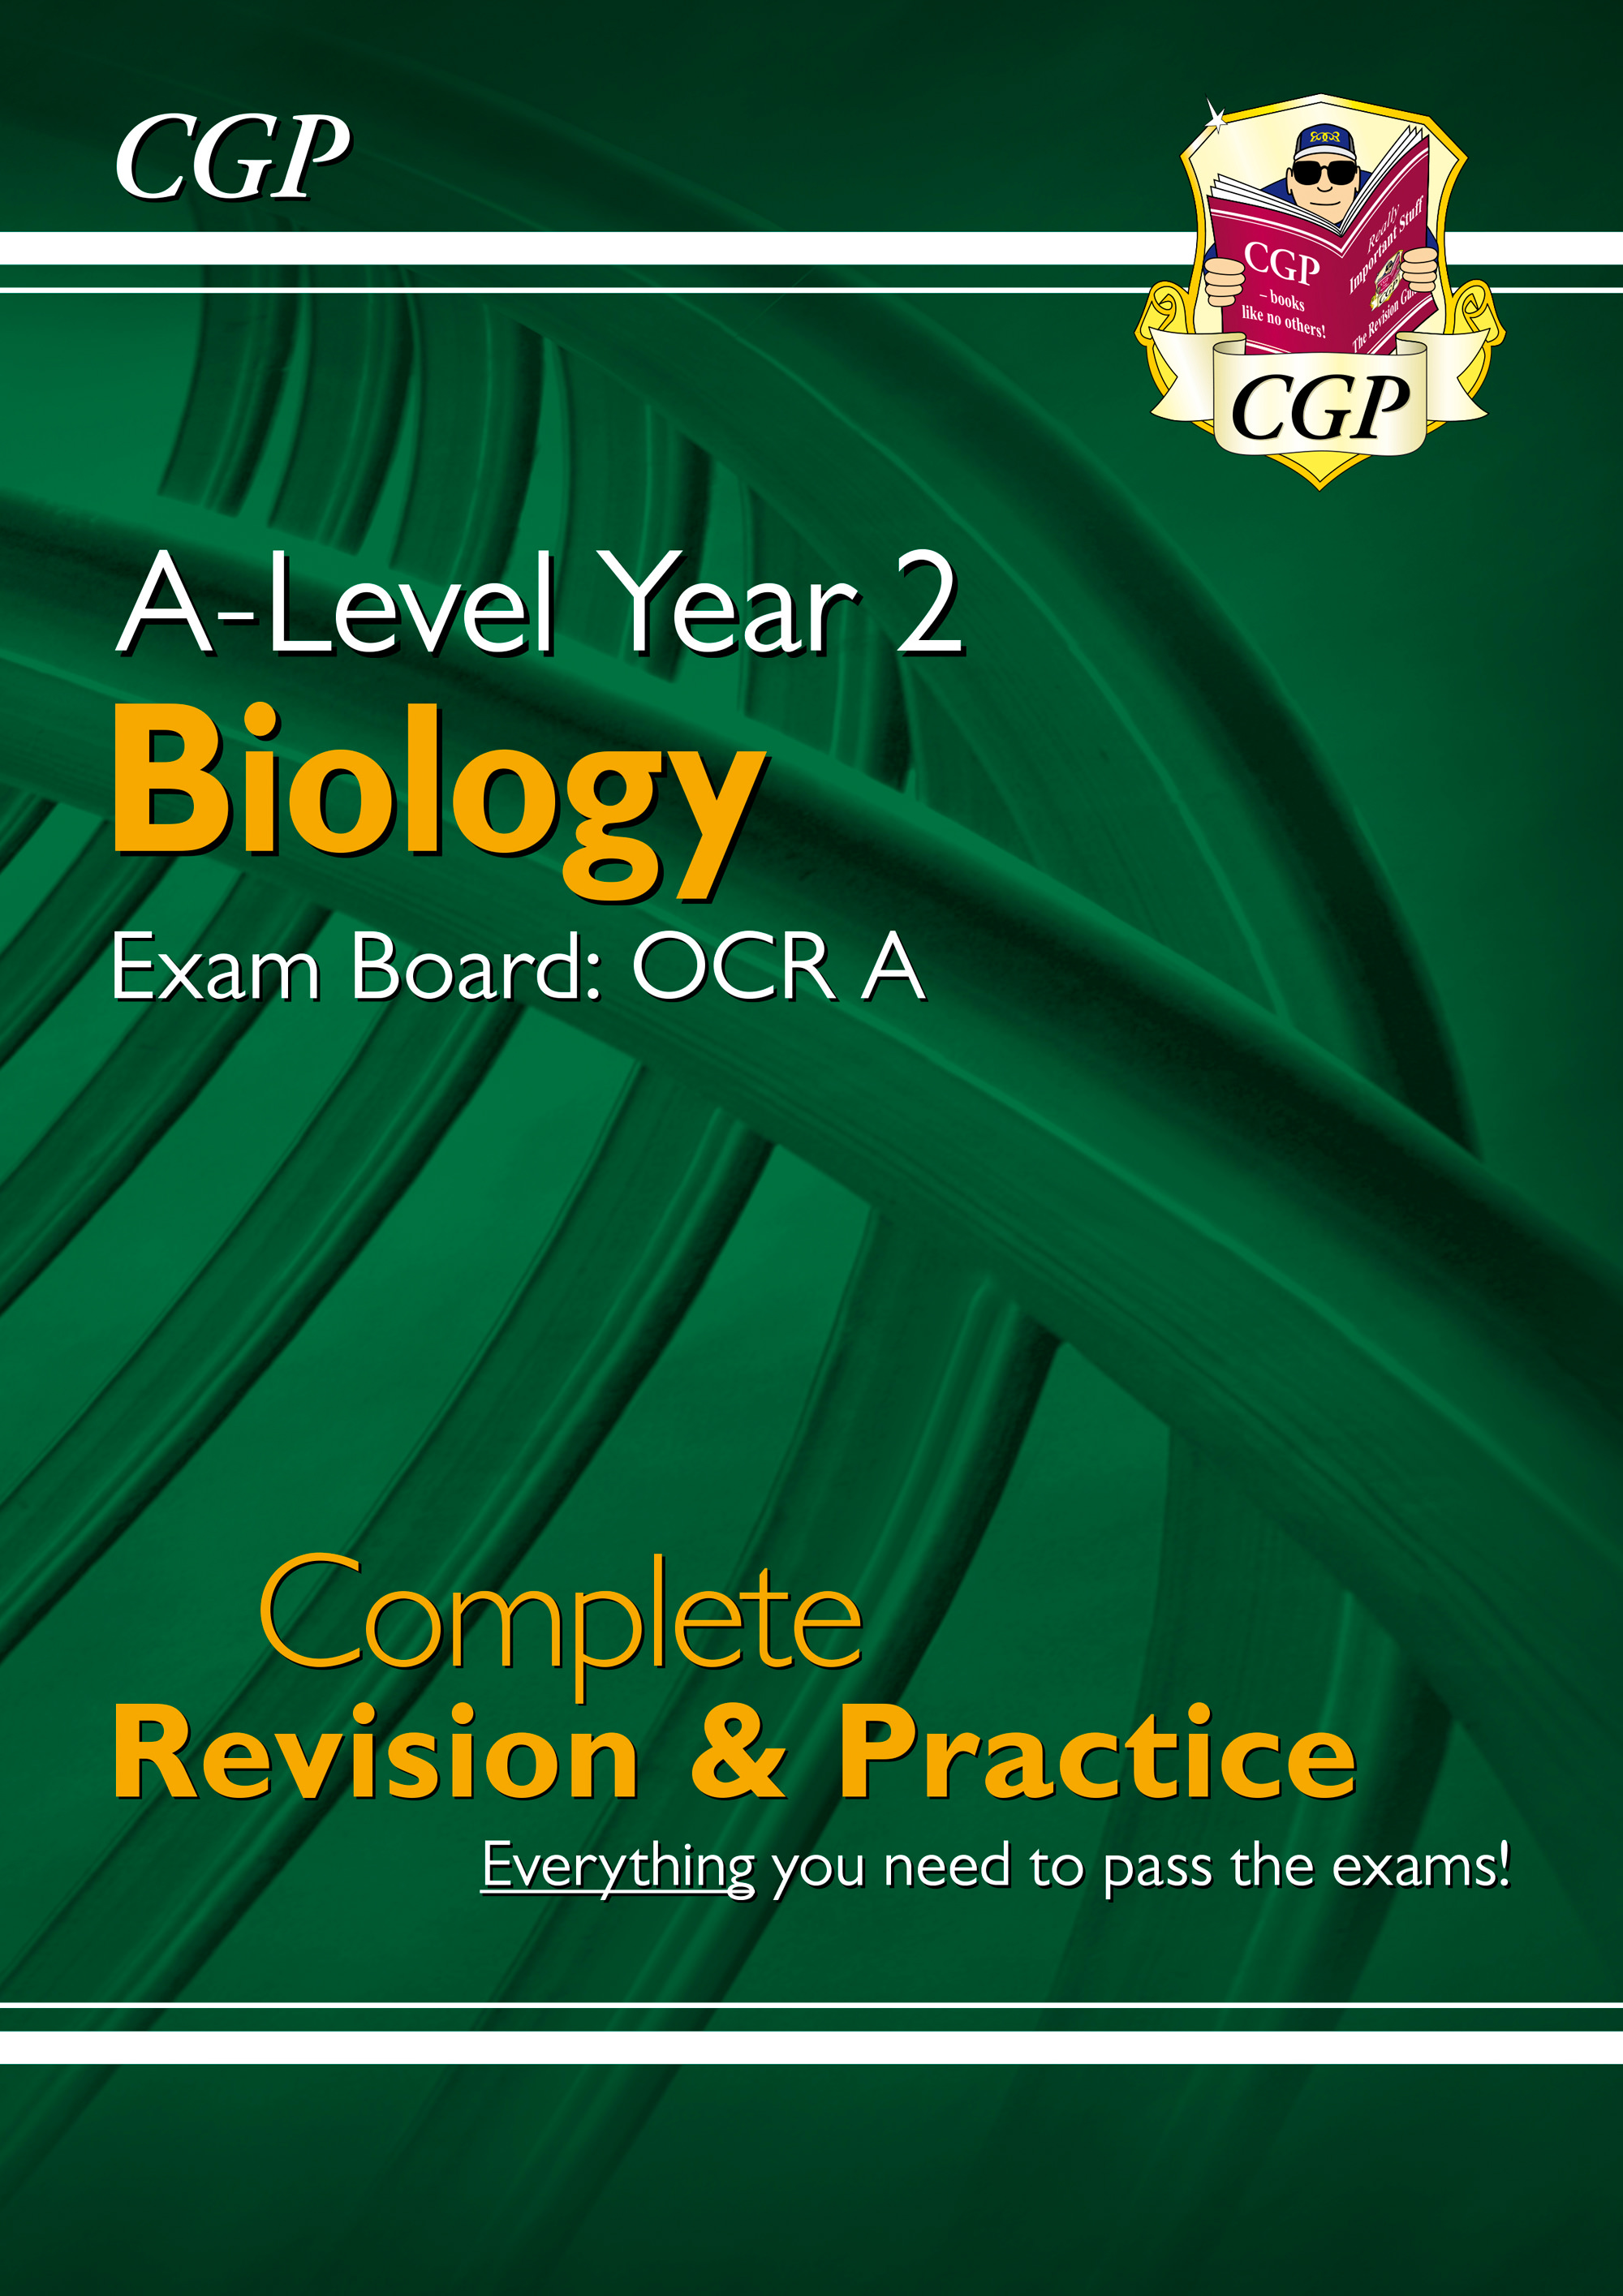 BRAR63DK - New A-Level Biology: OCR A Year 2 Complete Revision & Practice